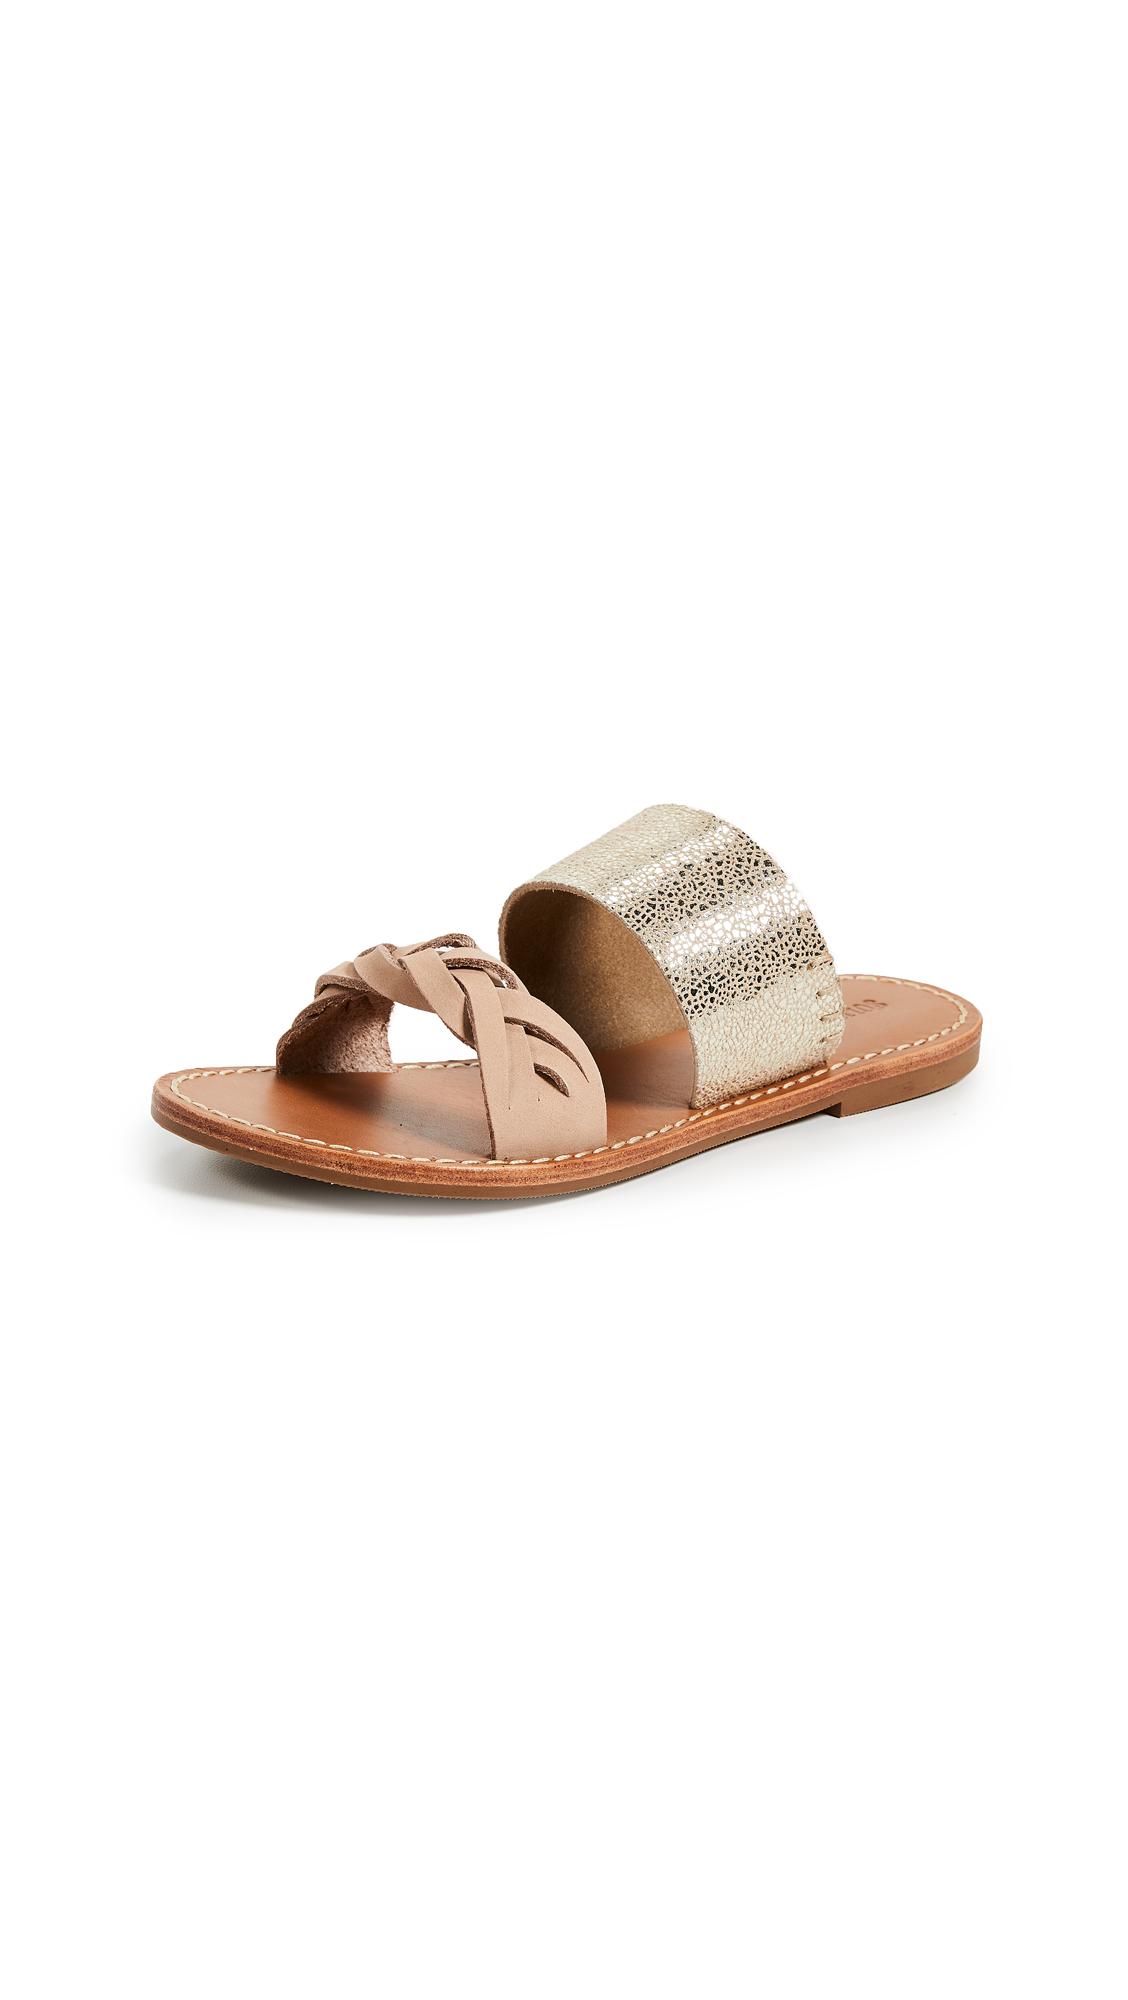 Soludos Metallic Braided Slide Sandals - Nude/Pale Gold